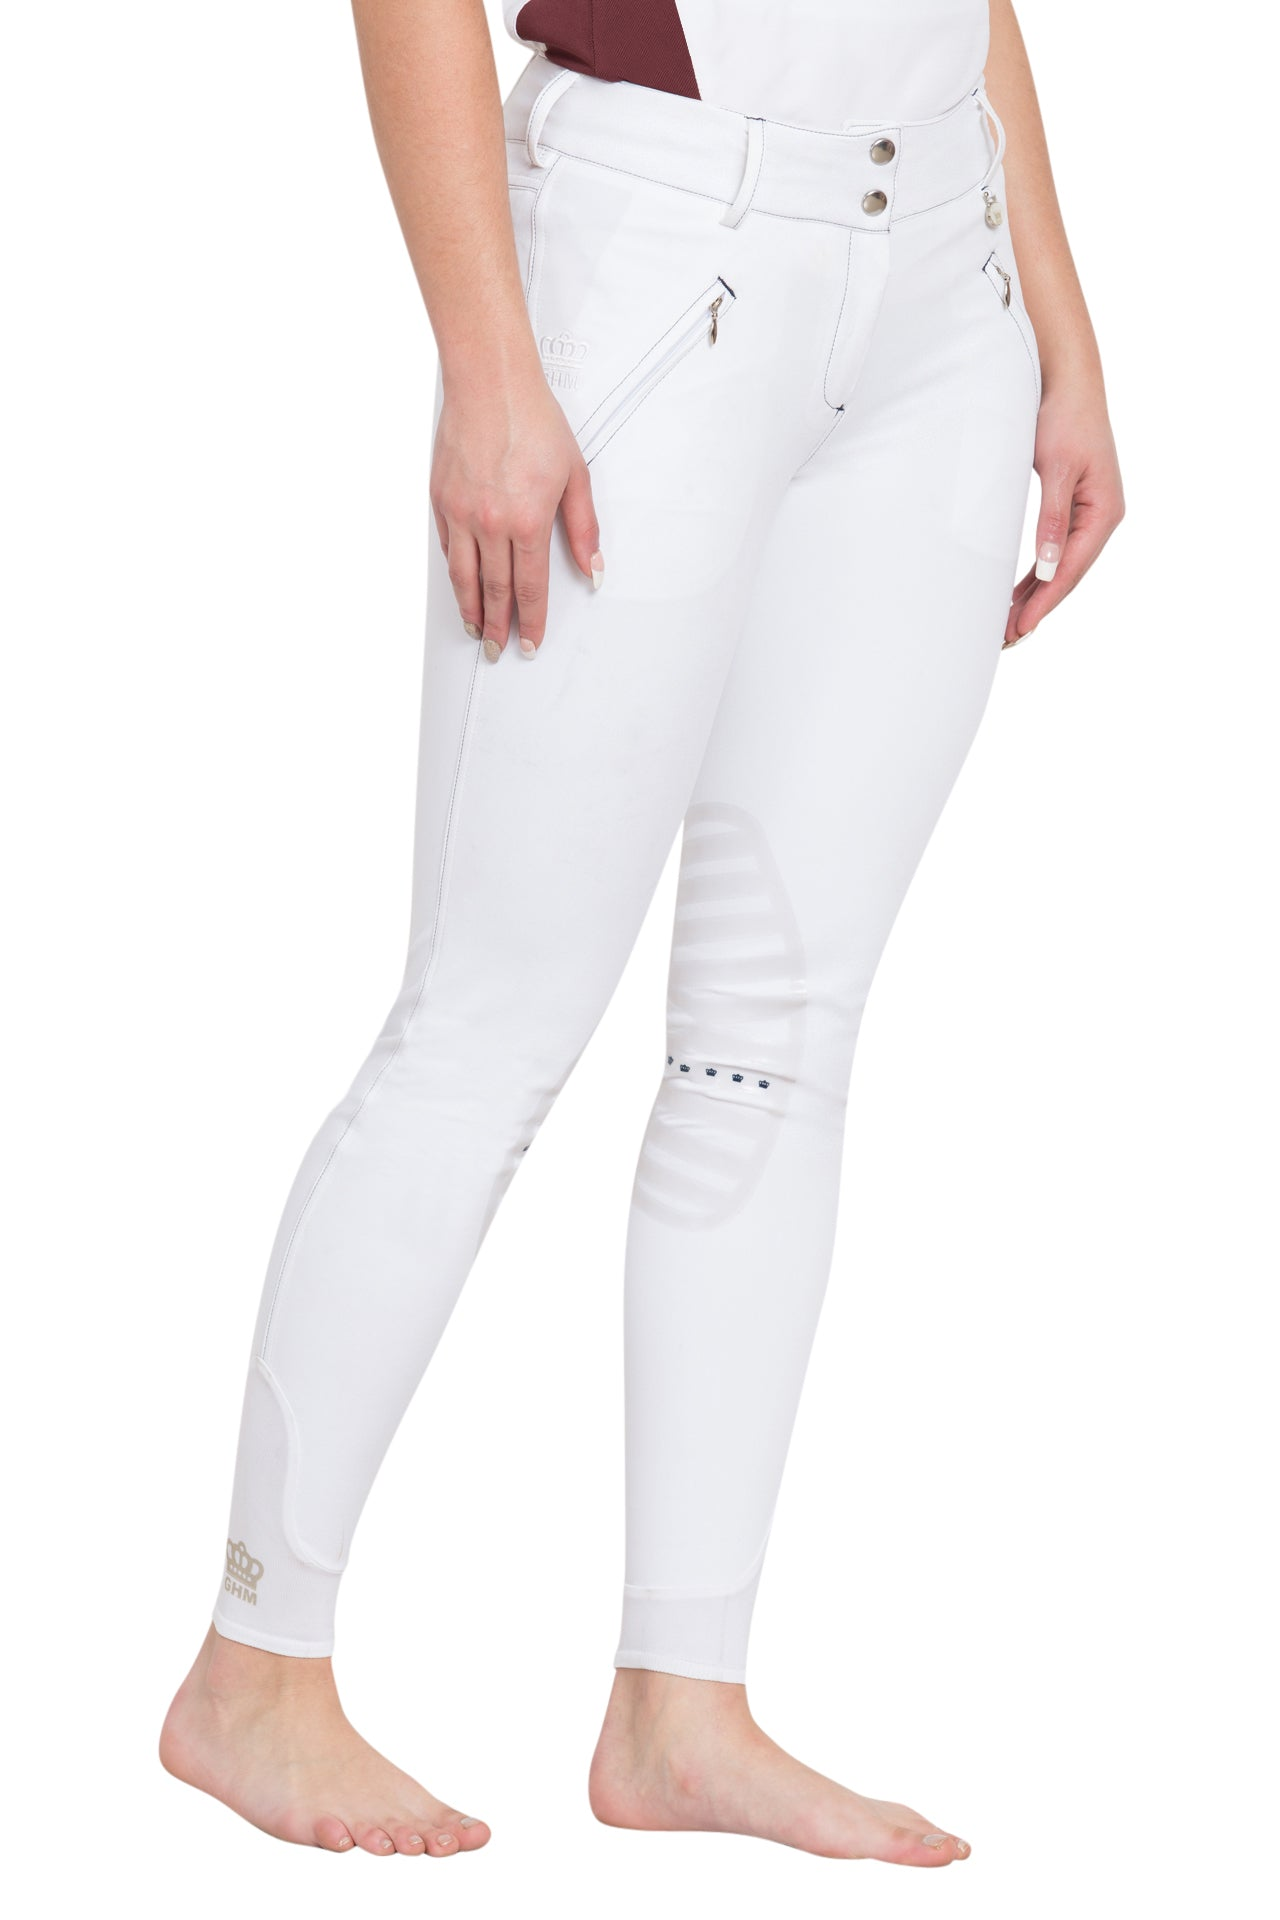 George H Morris Ladies Derby Silicone Knee Patch Breeches_1